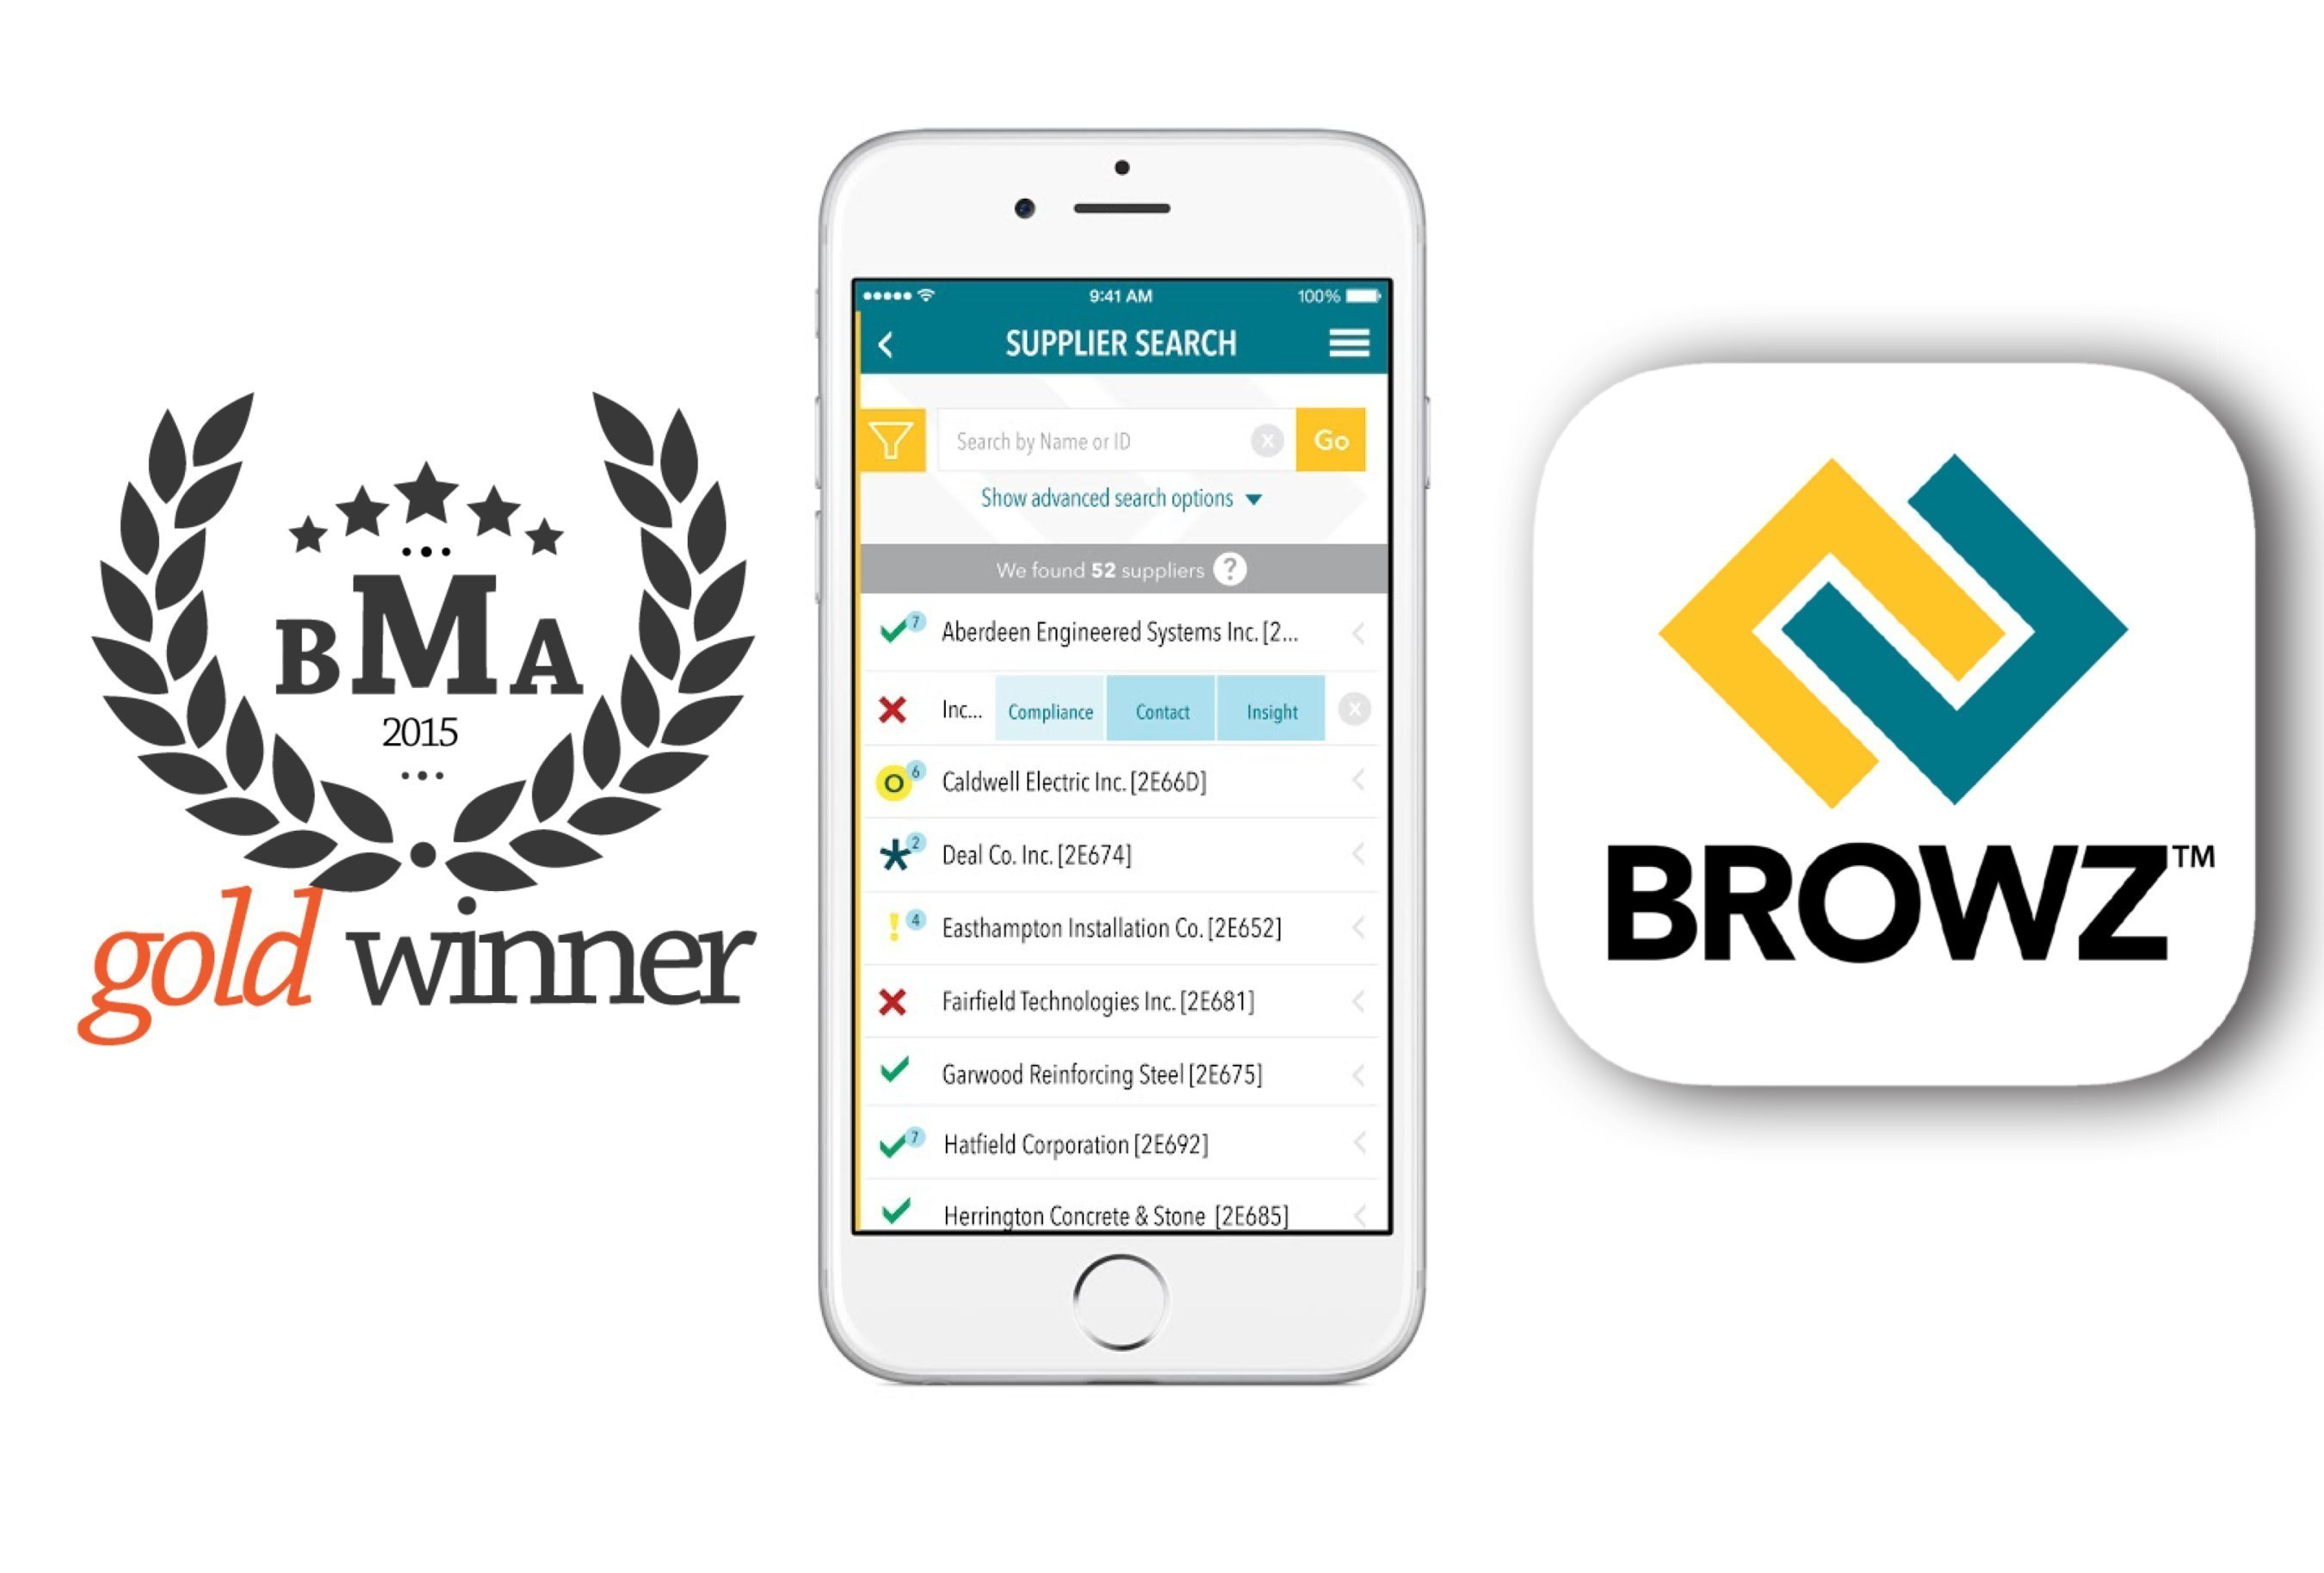 BROWZ was recently awarded the Gold Award from Best Mobile App Awards in the Best App Design category.